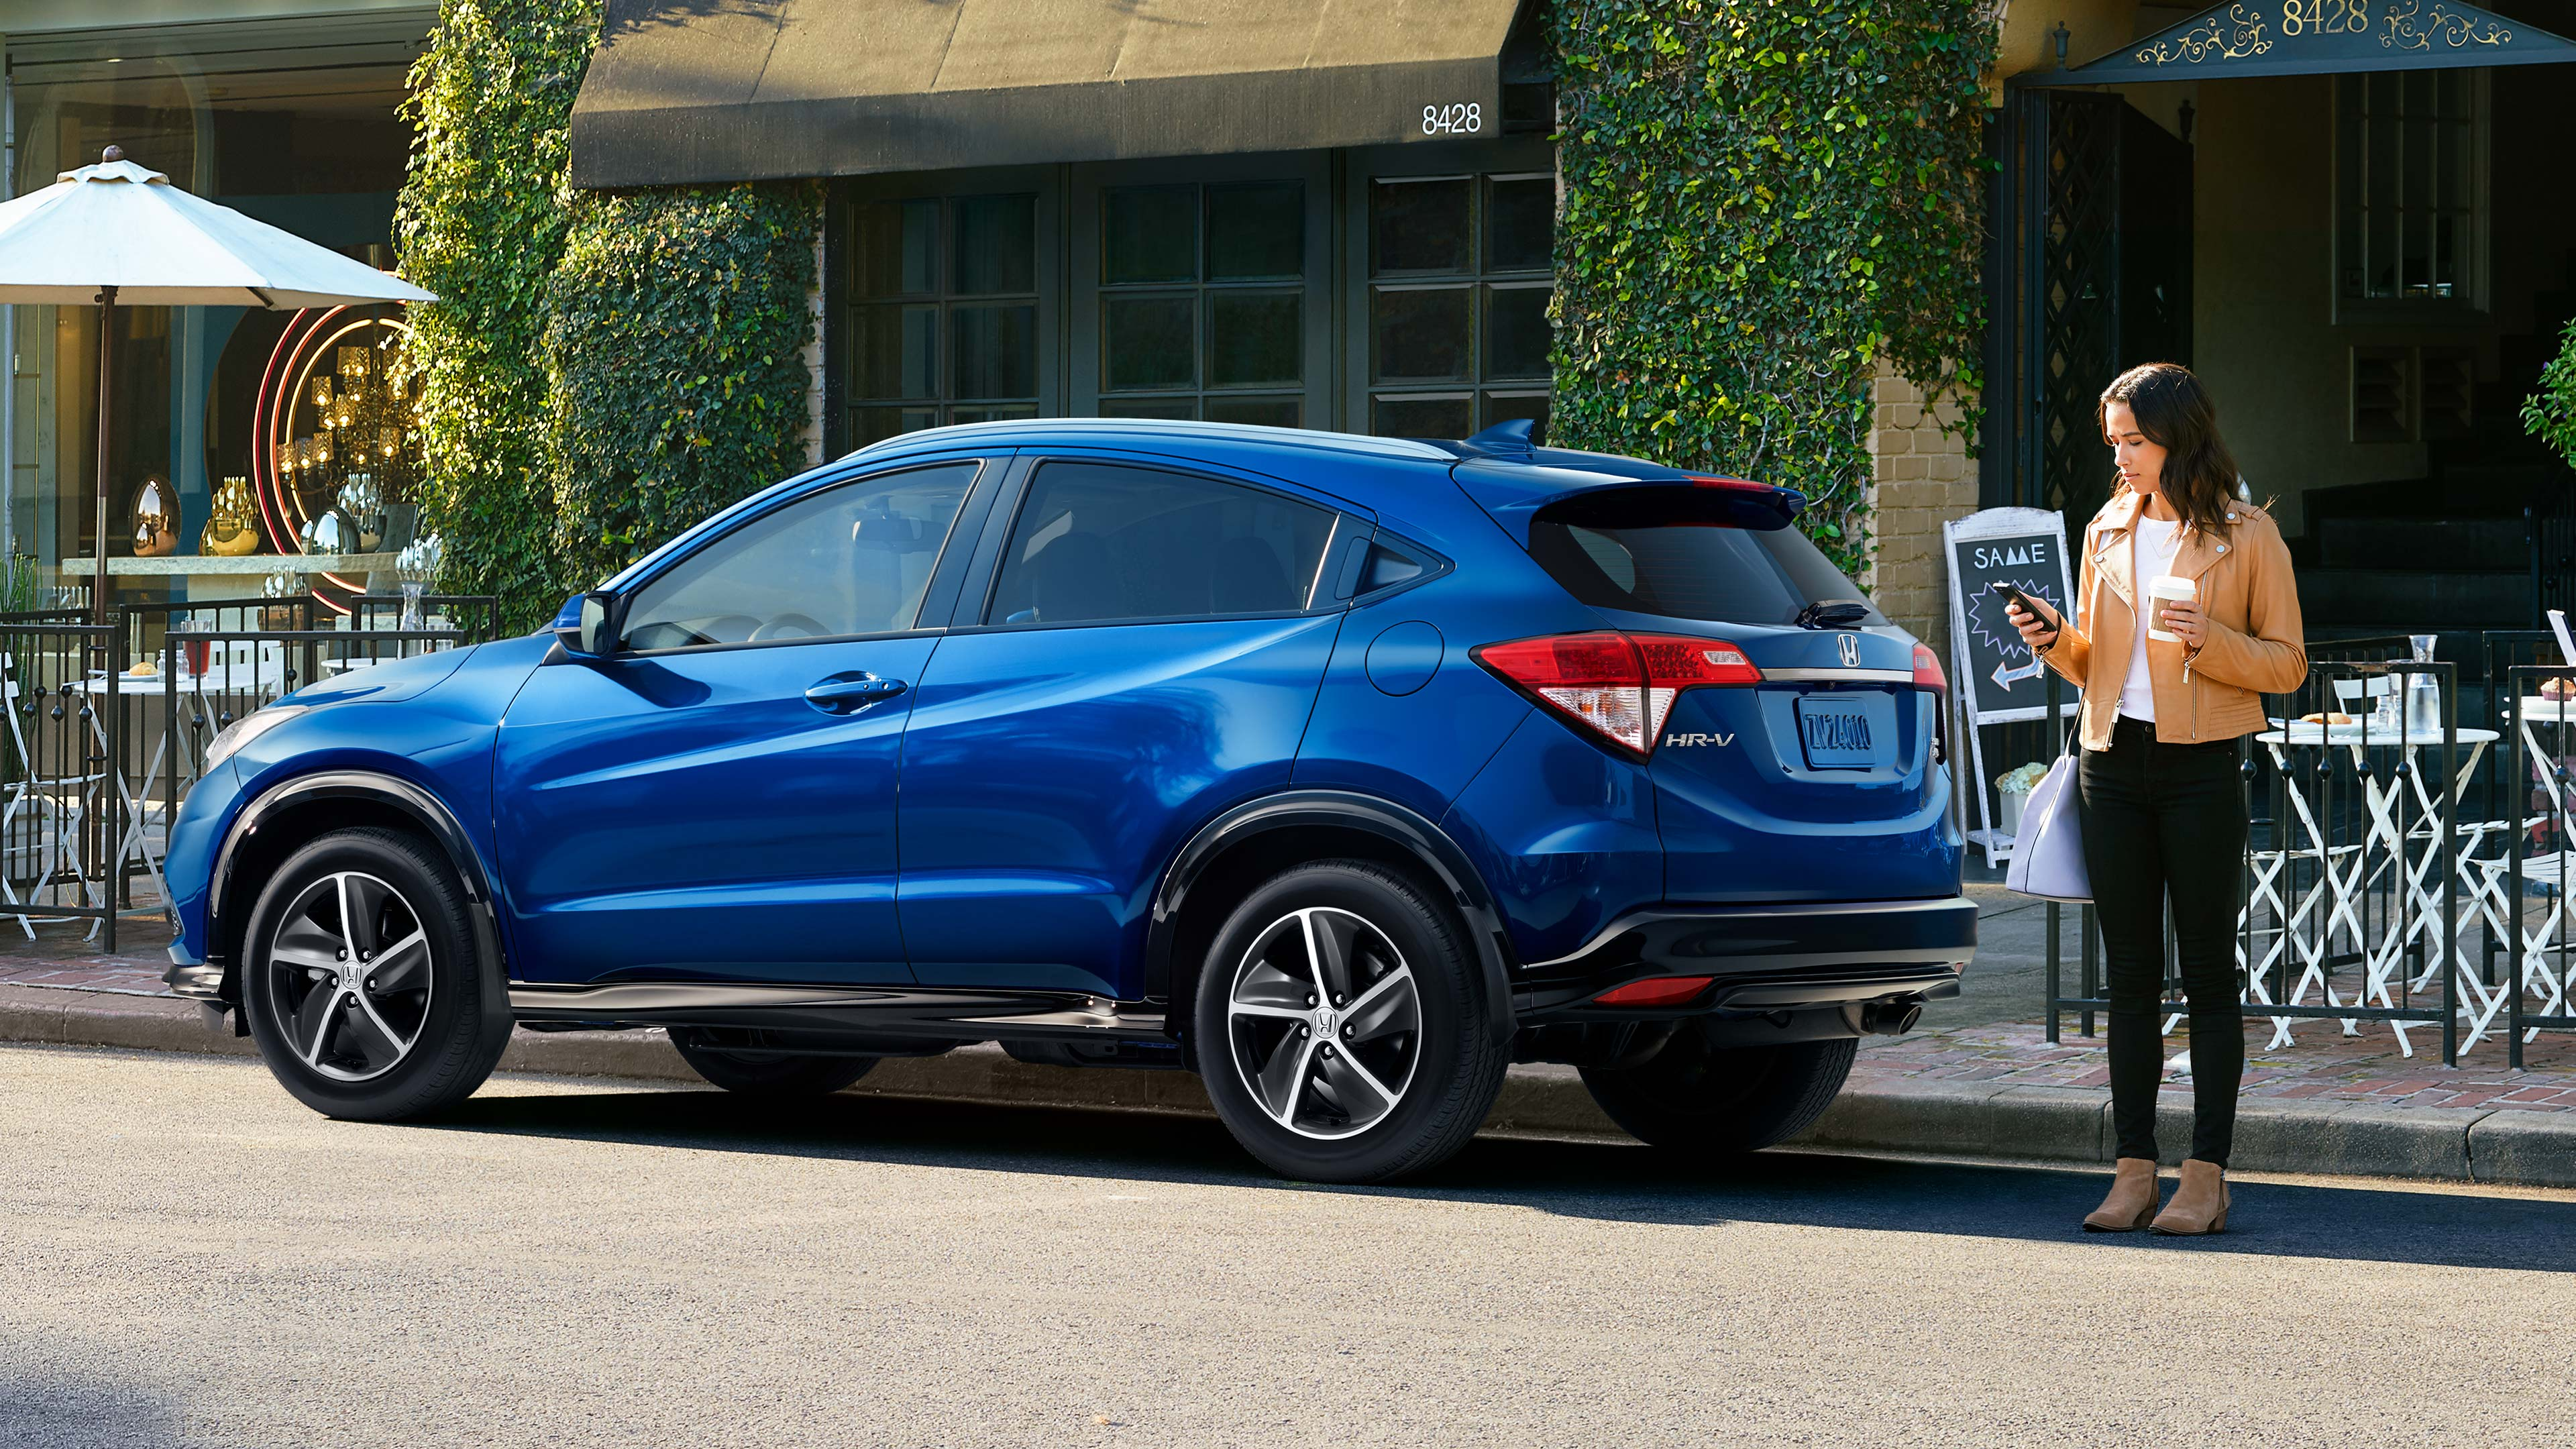 2020 Honda HRV Exterior at Richmond Hill Honda in Toronto and the GTA